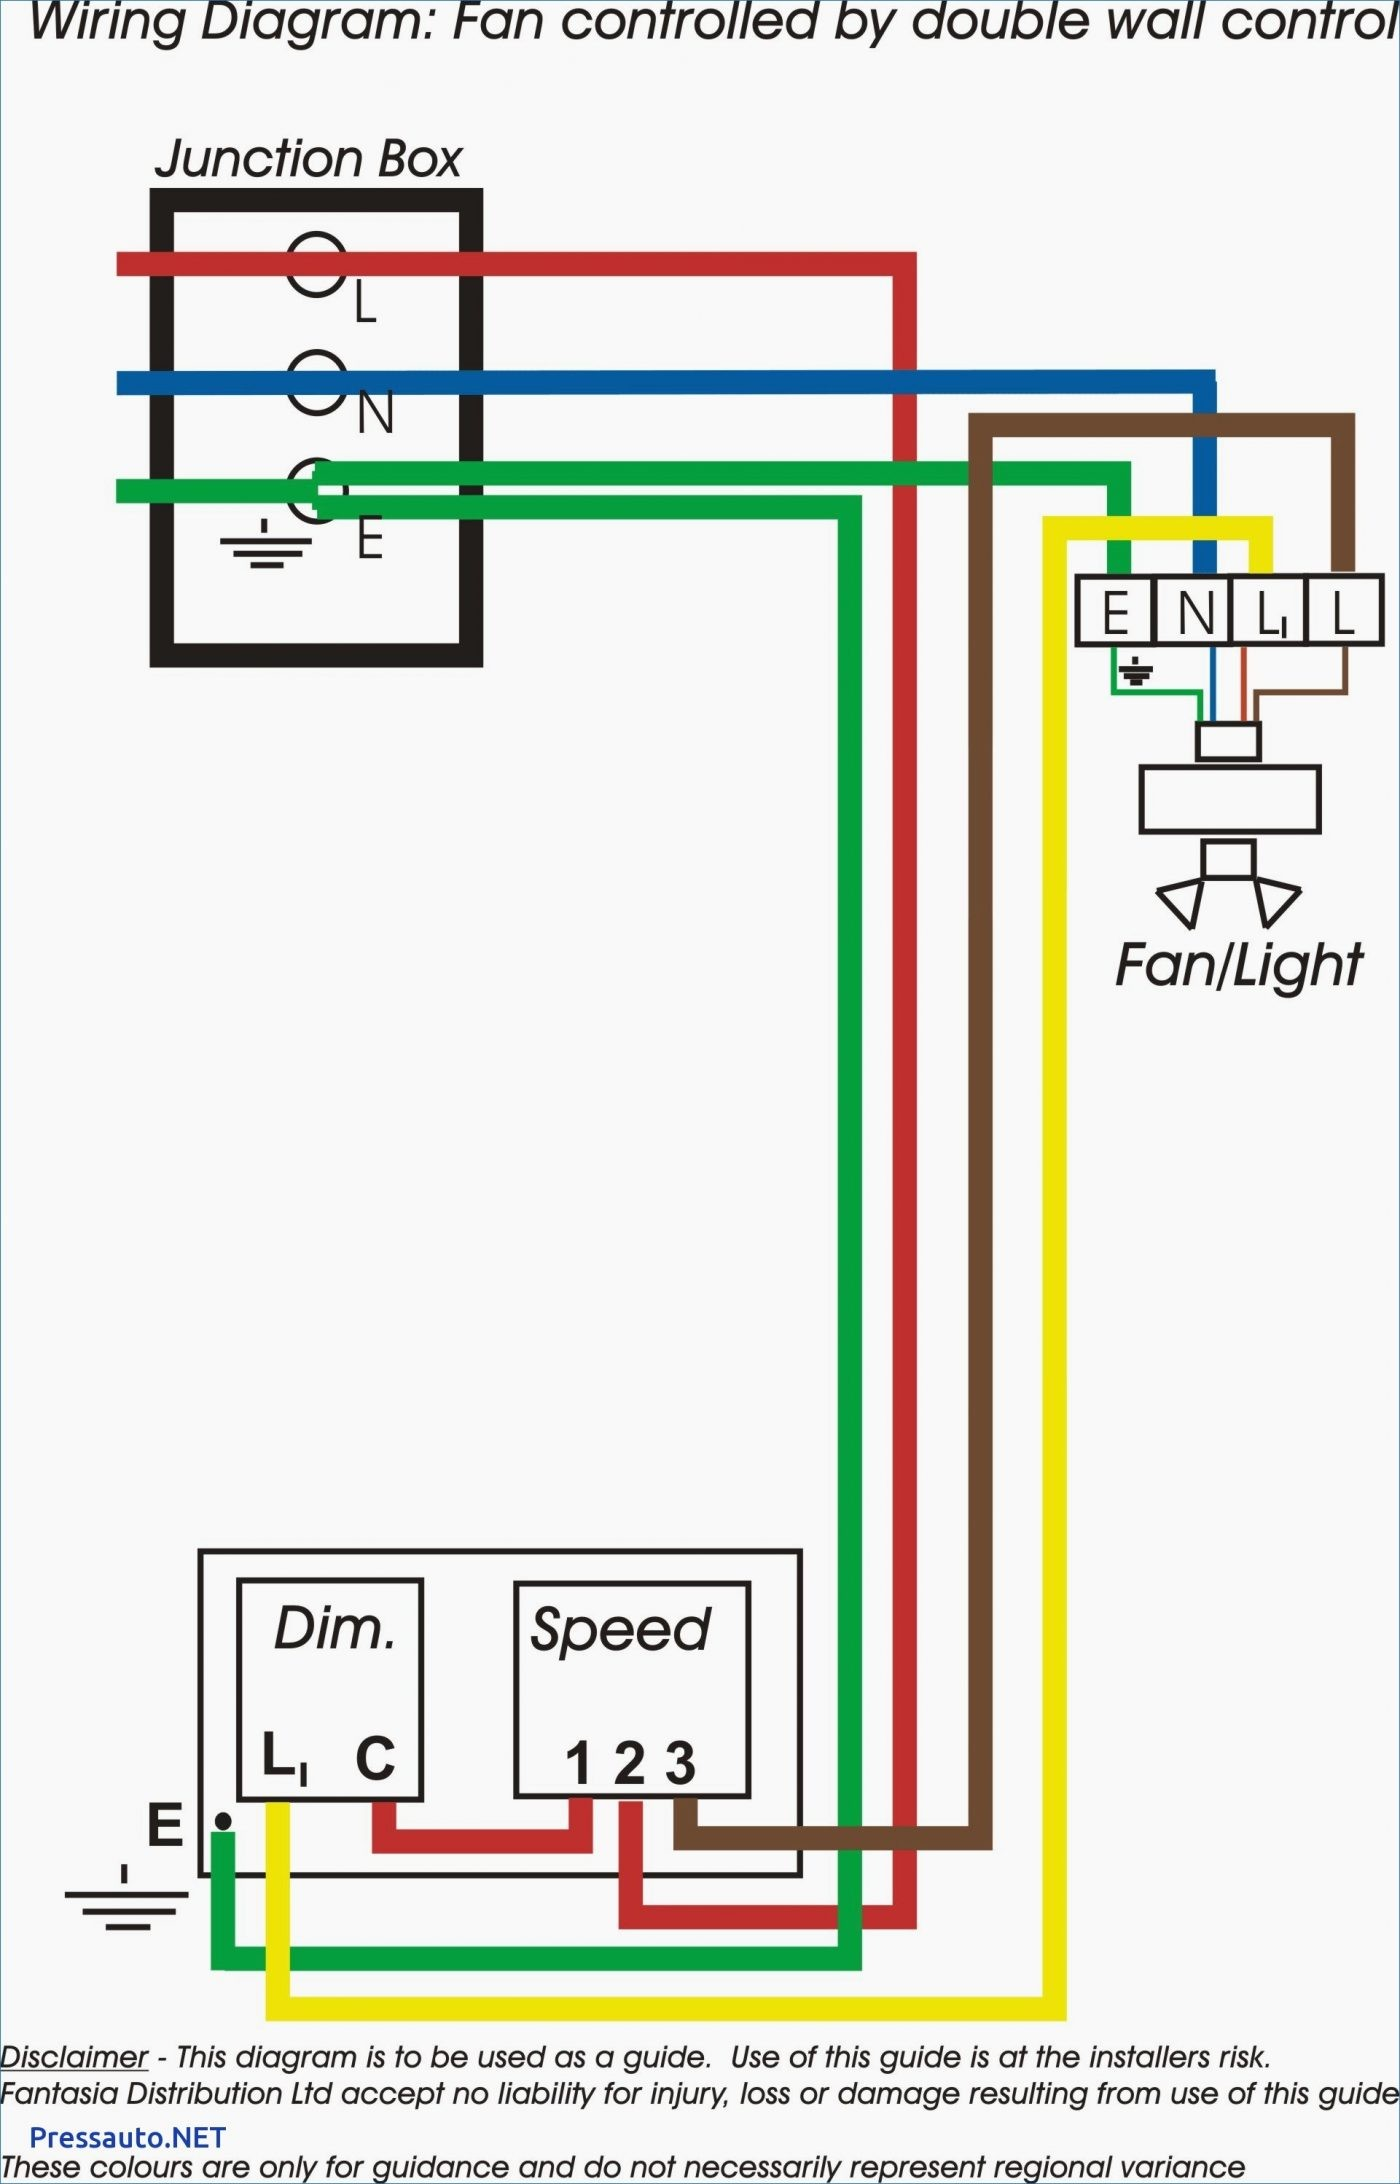 Prominent Wiring Diagram - Wiring